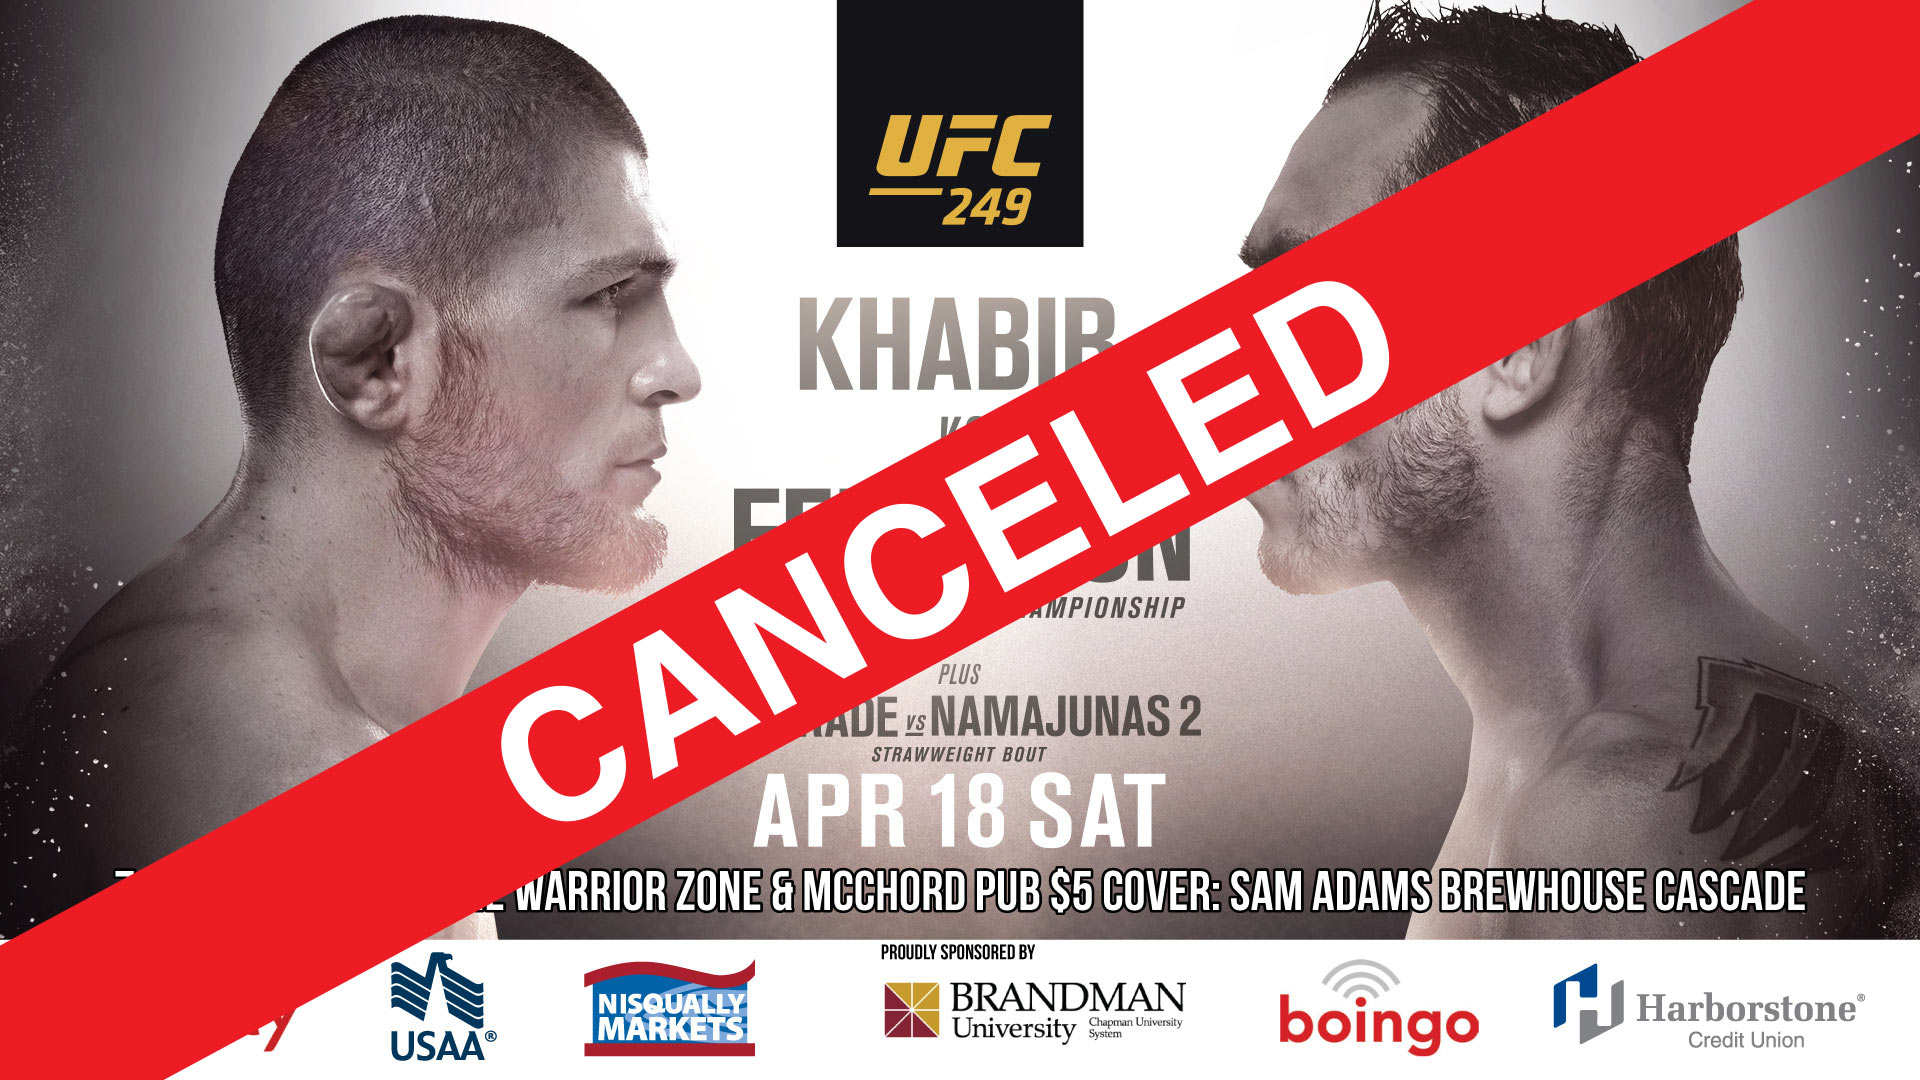 UFC 249 CANCELED